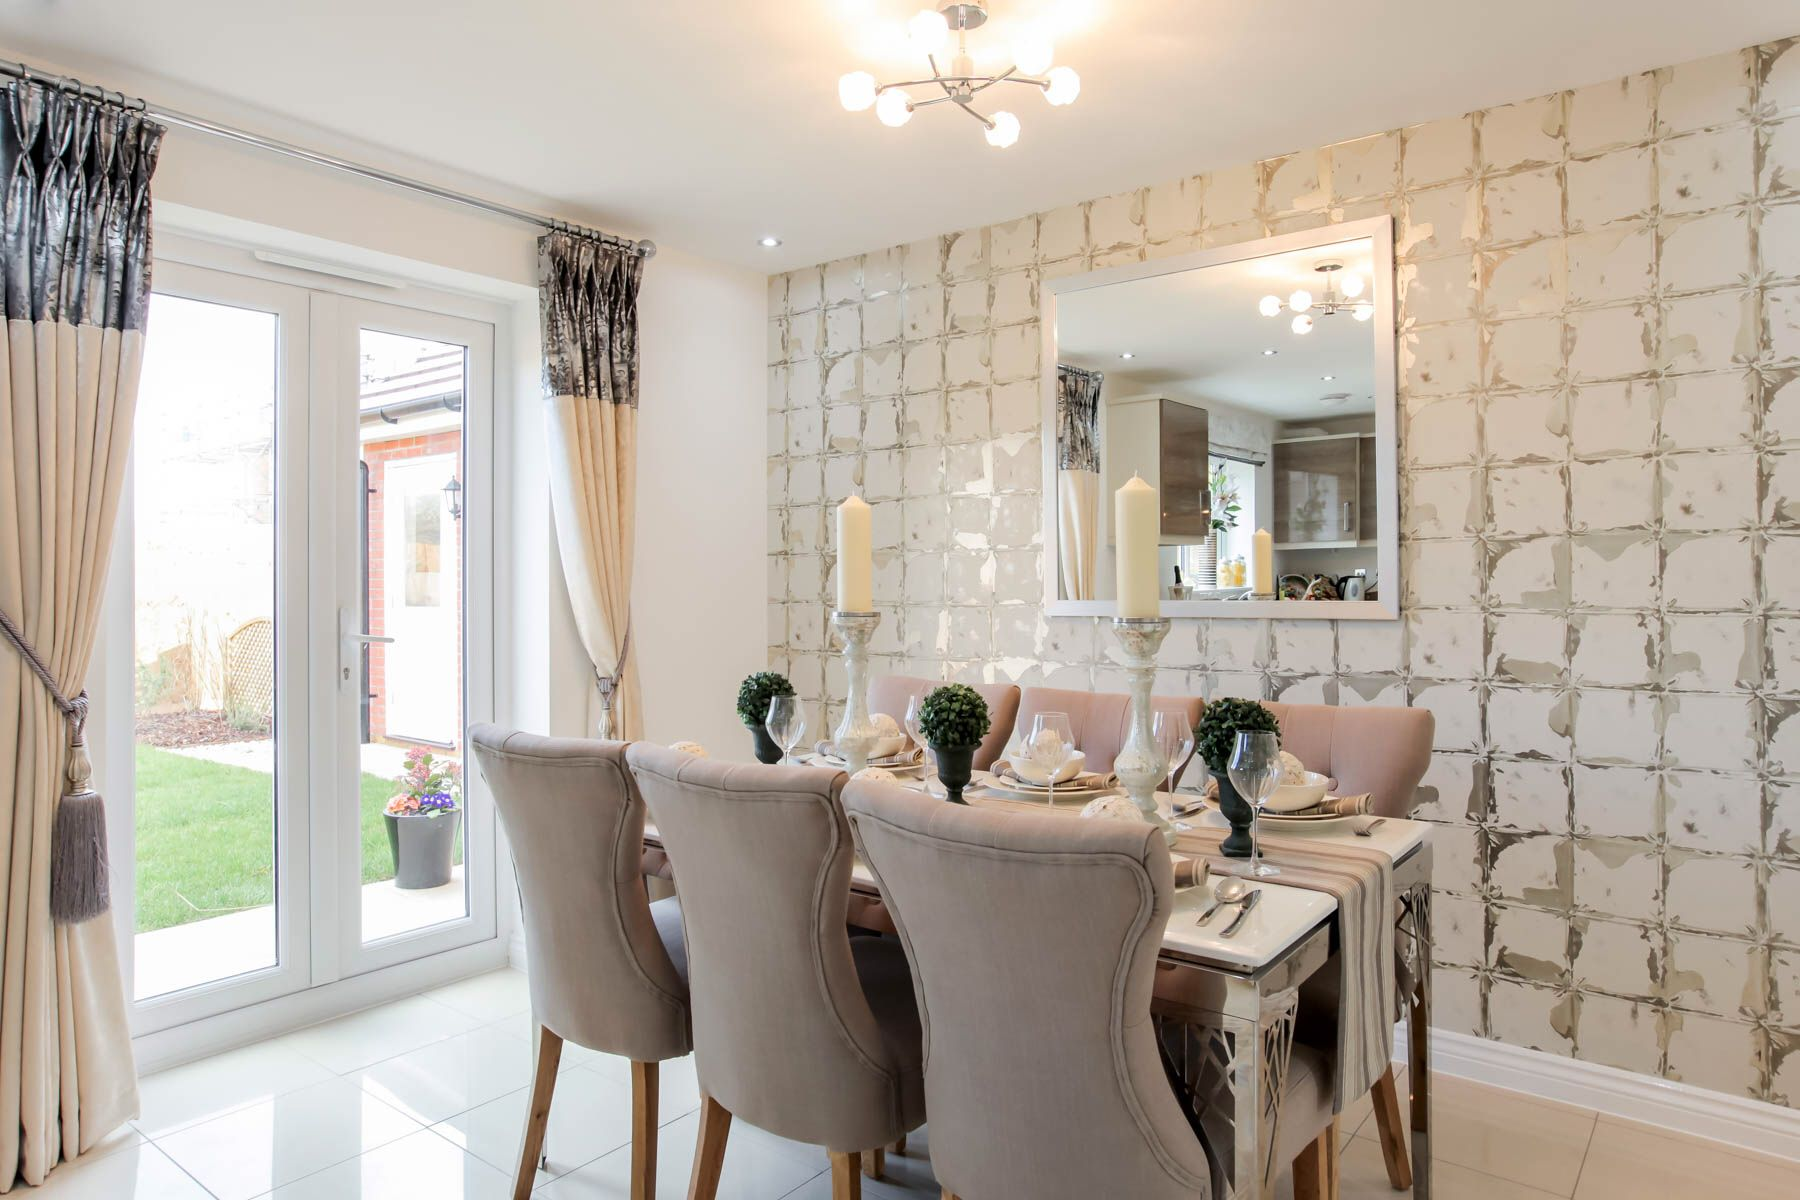 show home dining room | Taylor Wimpey Midford Show Home Kingsmead. I love the ...